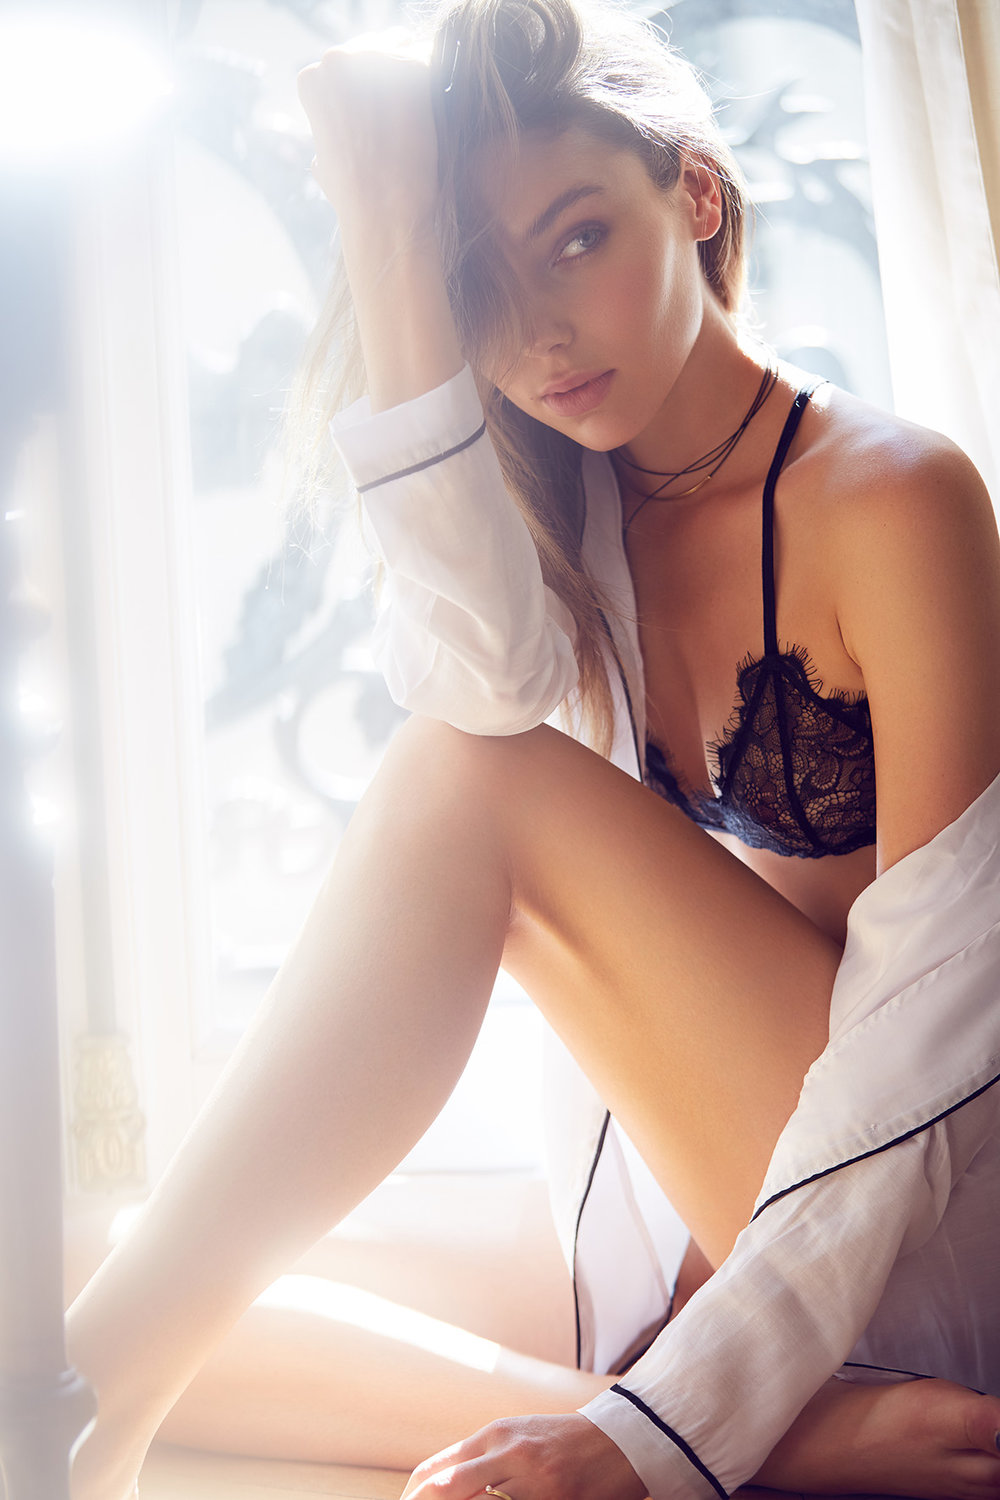 Paris Lingerie Photo shoot by Lost In Love